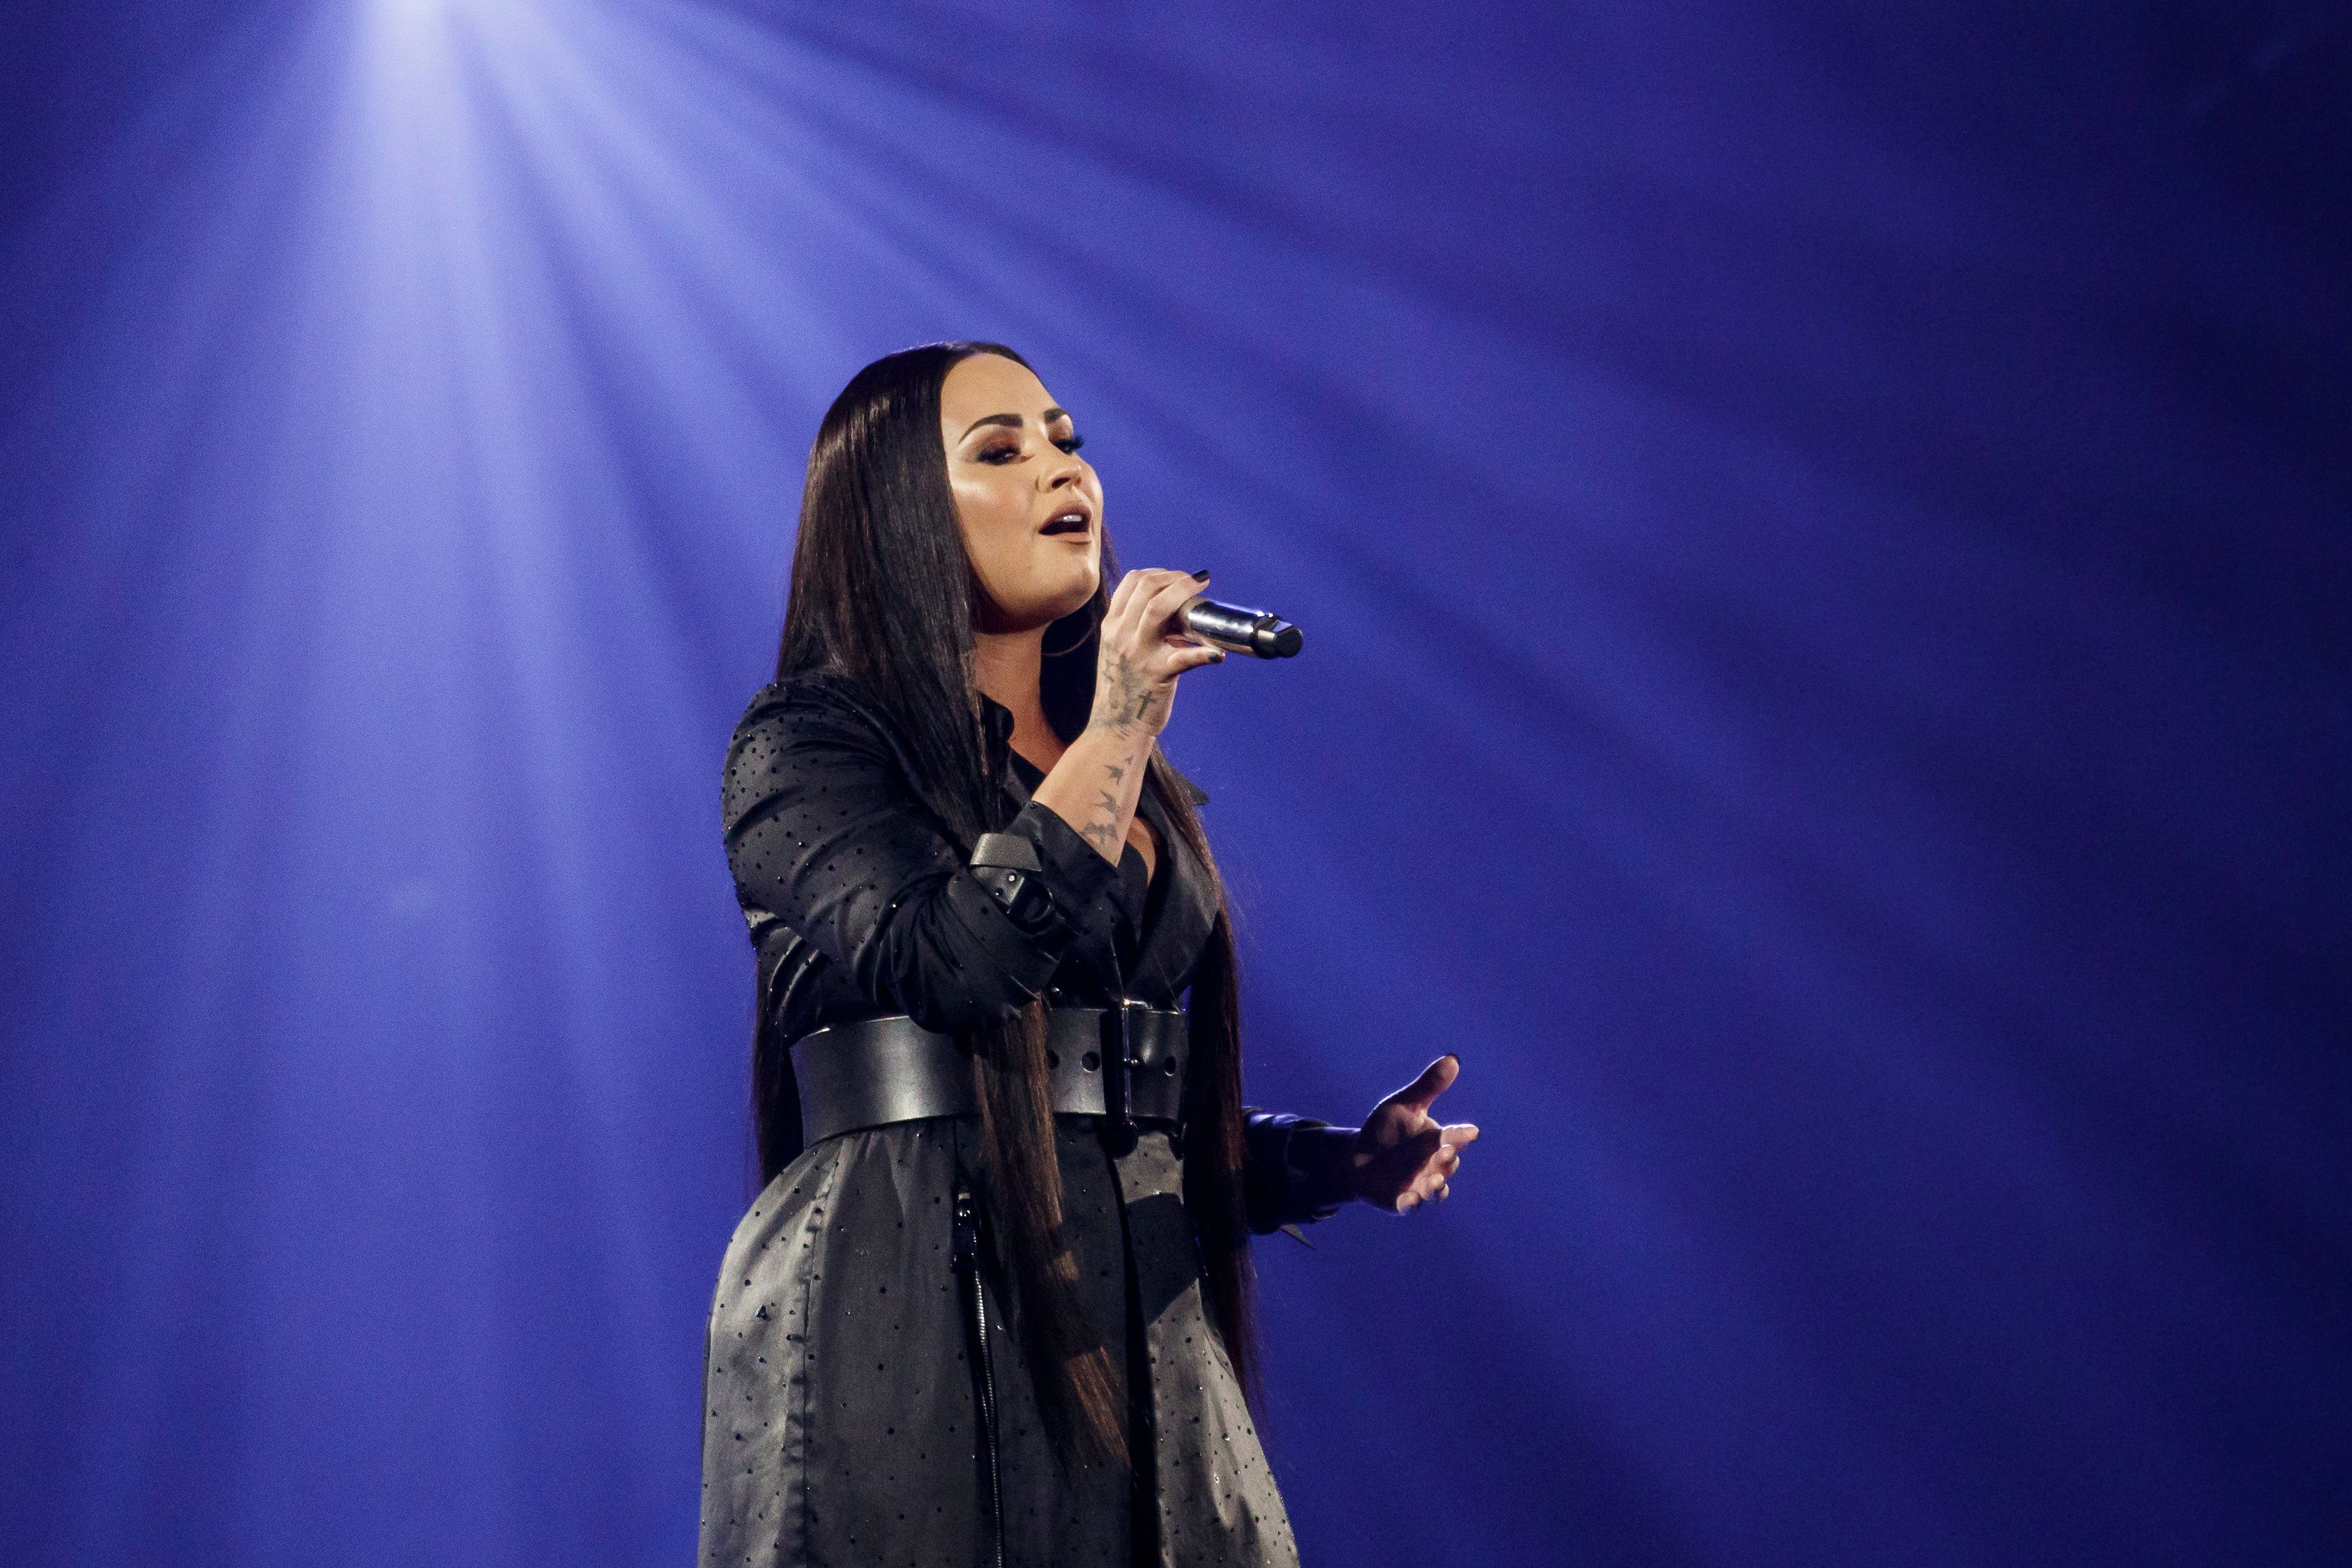 Demi Lovato Sings About Recent Alcohol Relapse In New Song 'Sober'